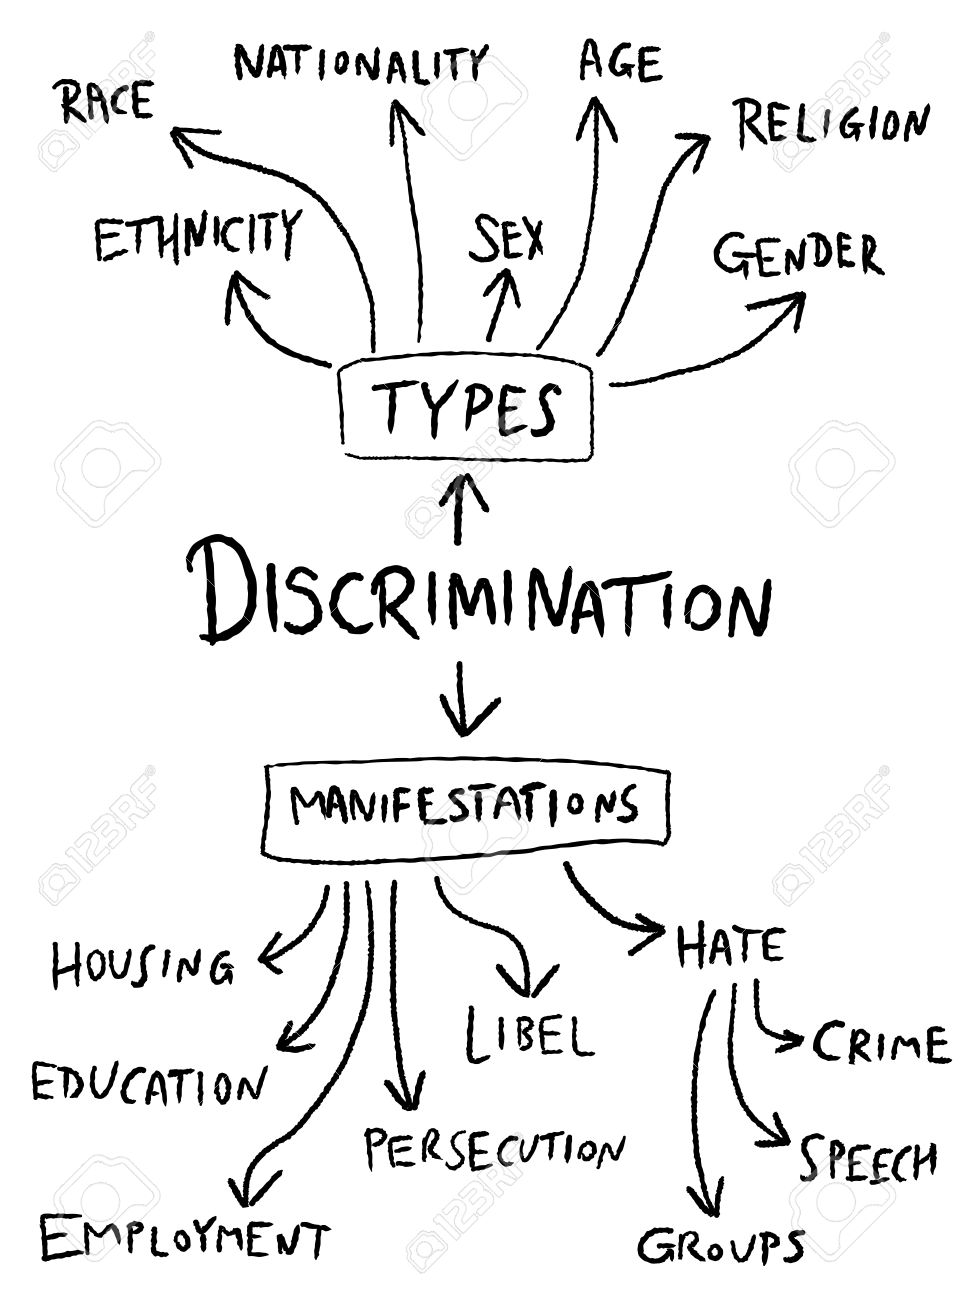 Age and sex and discrimination